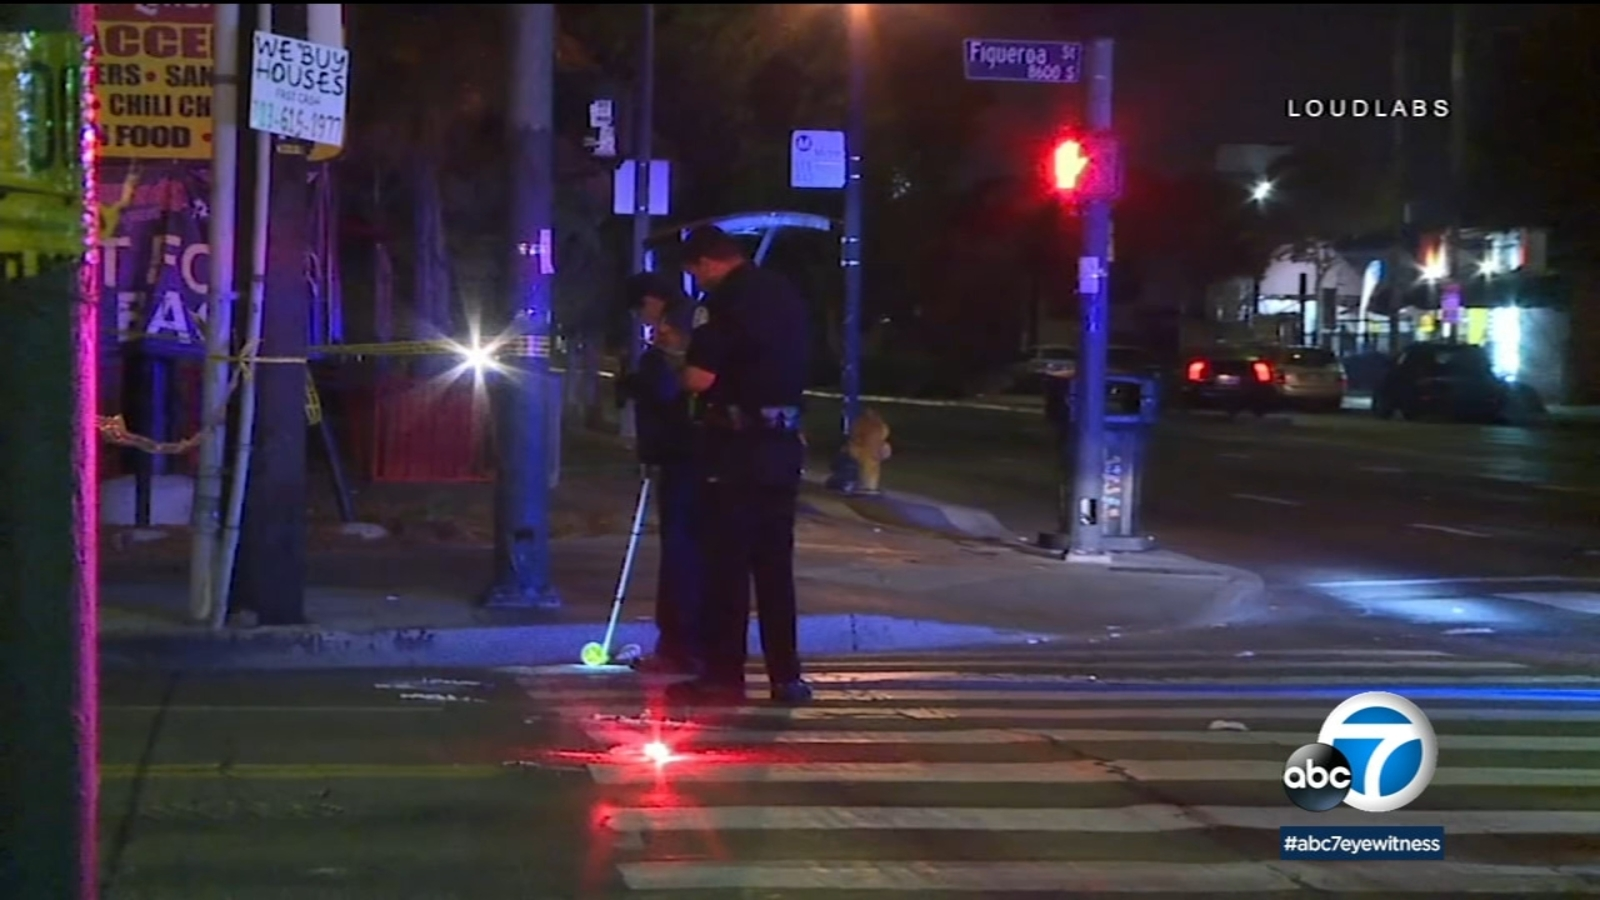 61-year-old man fatally struck in hit-and-run crash in South LA; driver sought